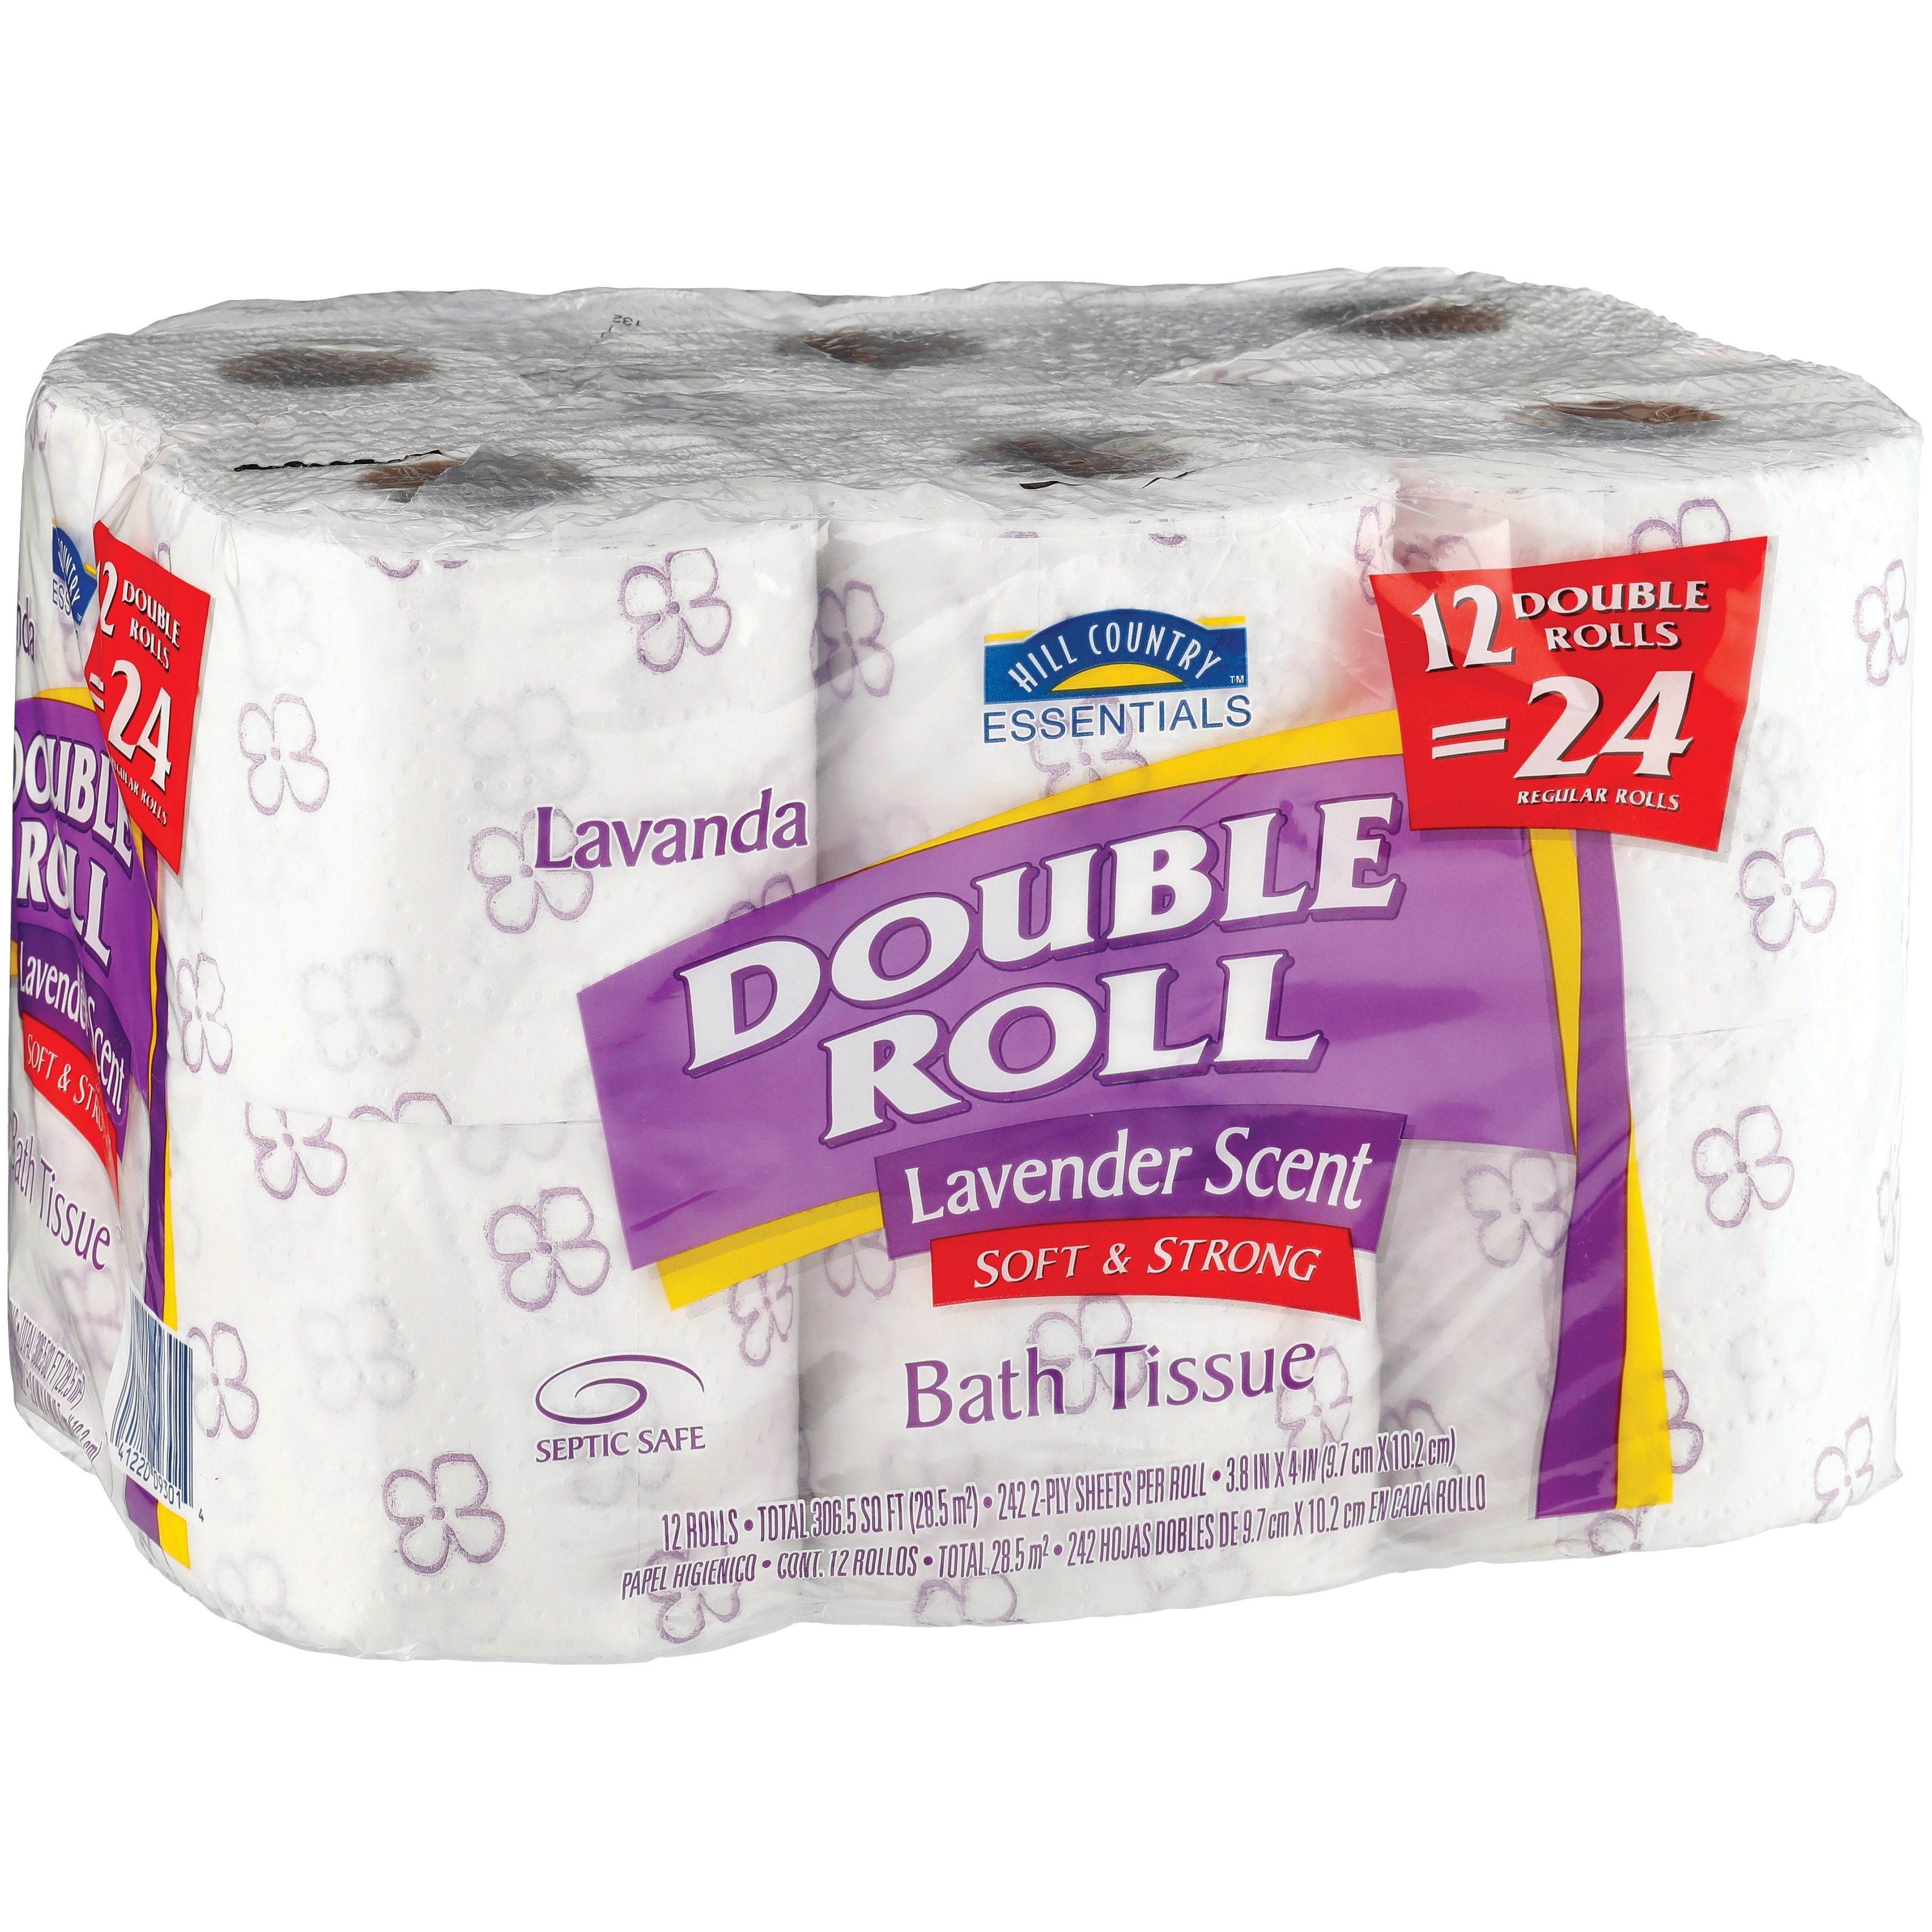 Shop Toilet Paper | Grocery Stockup at HEB